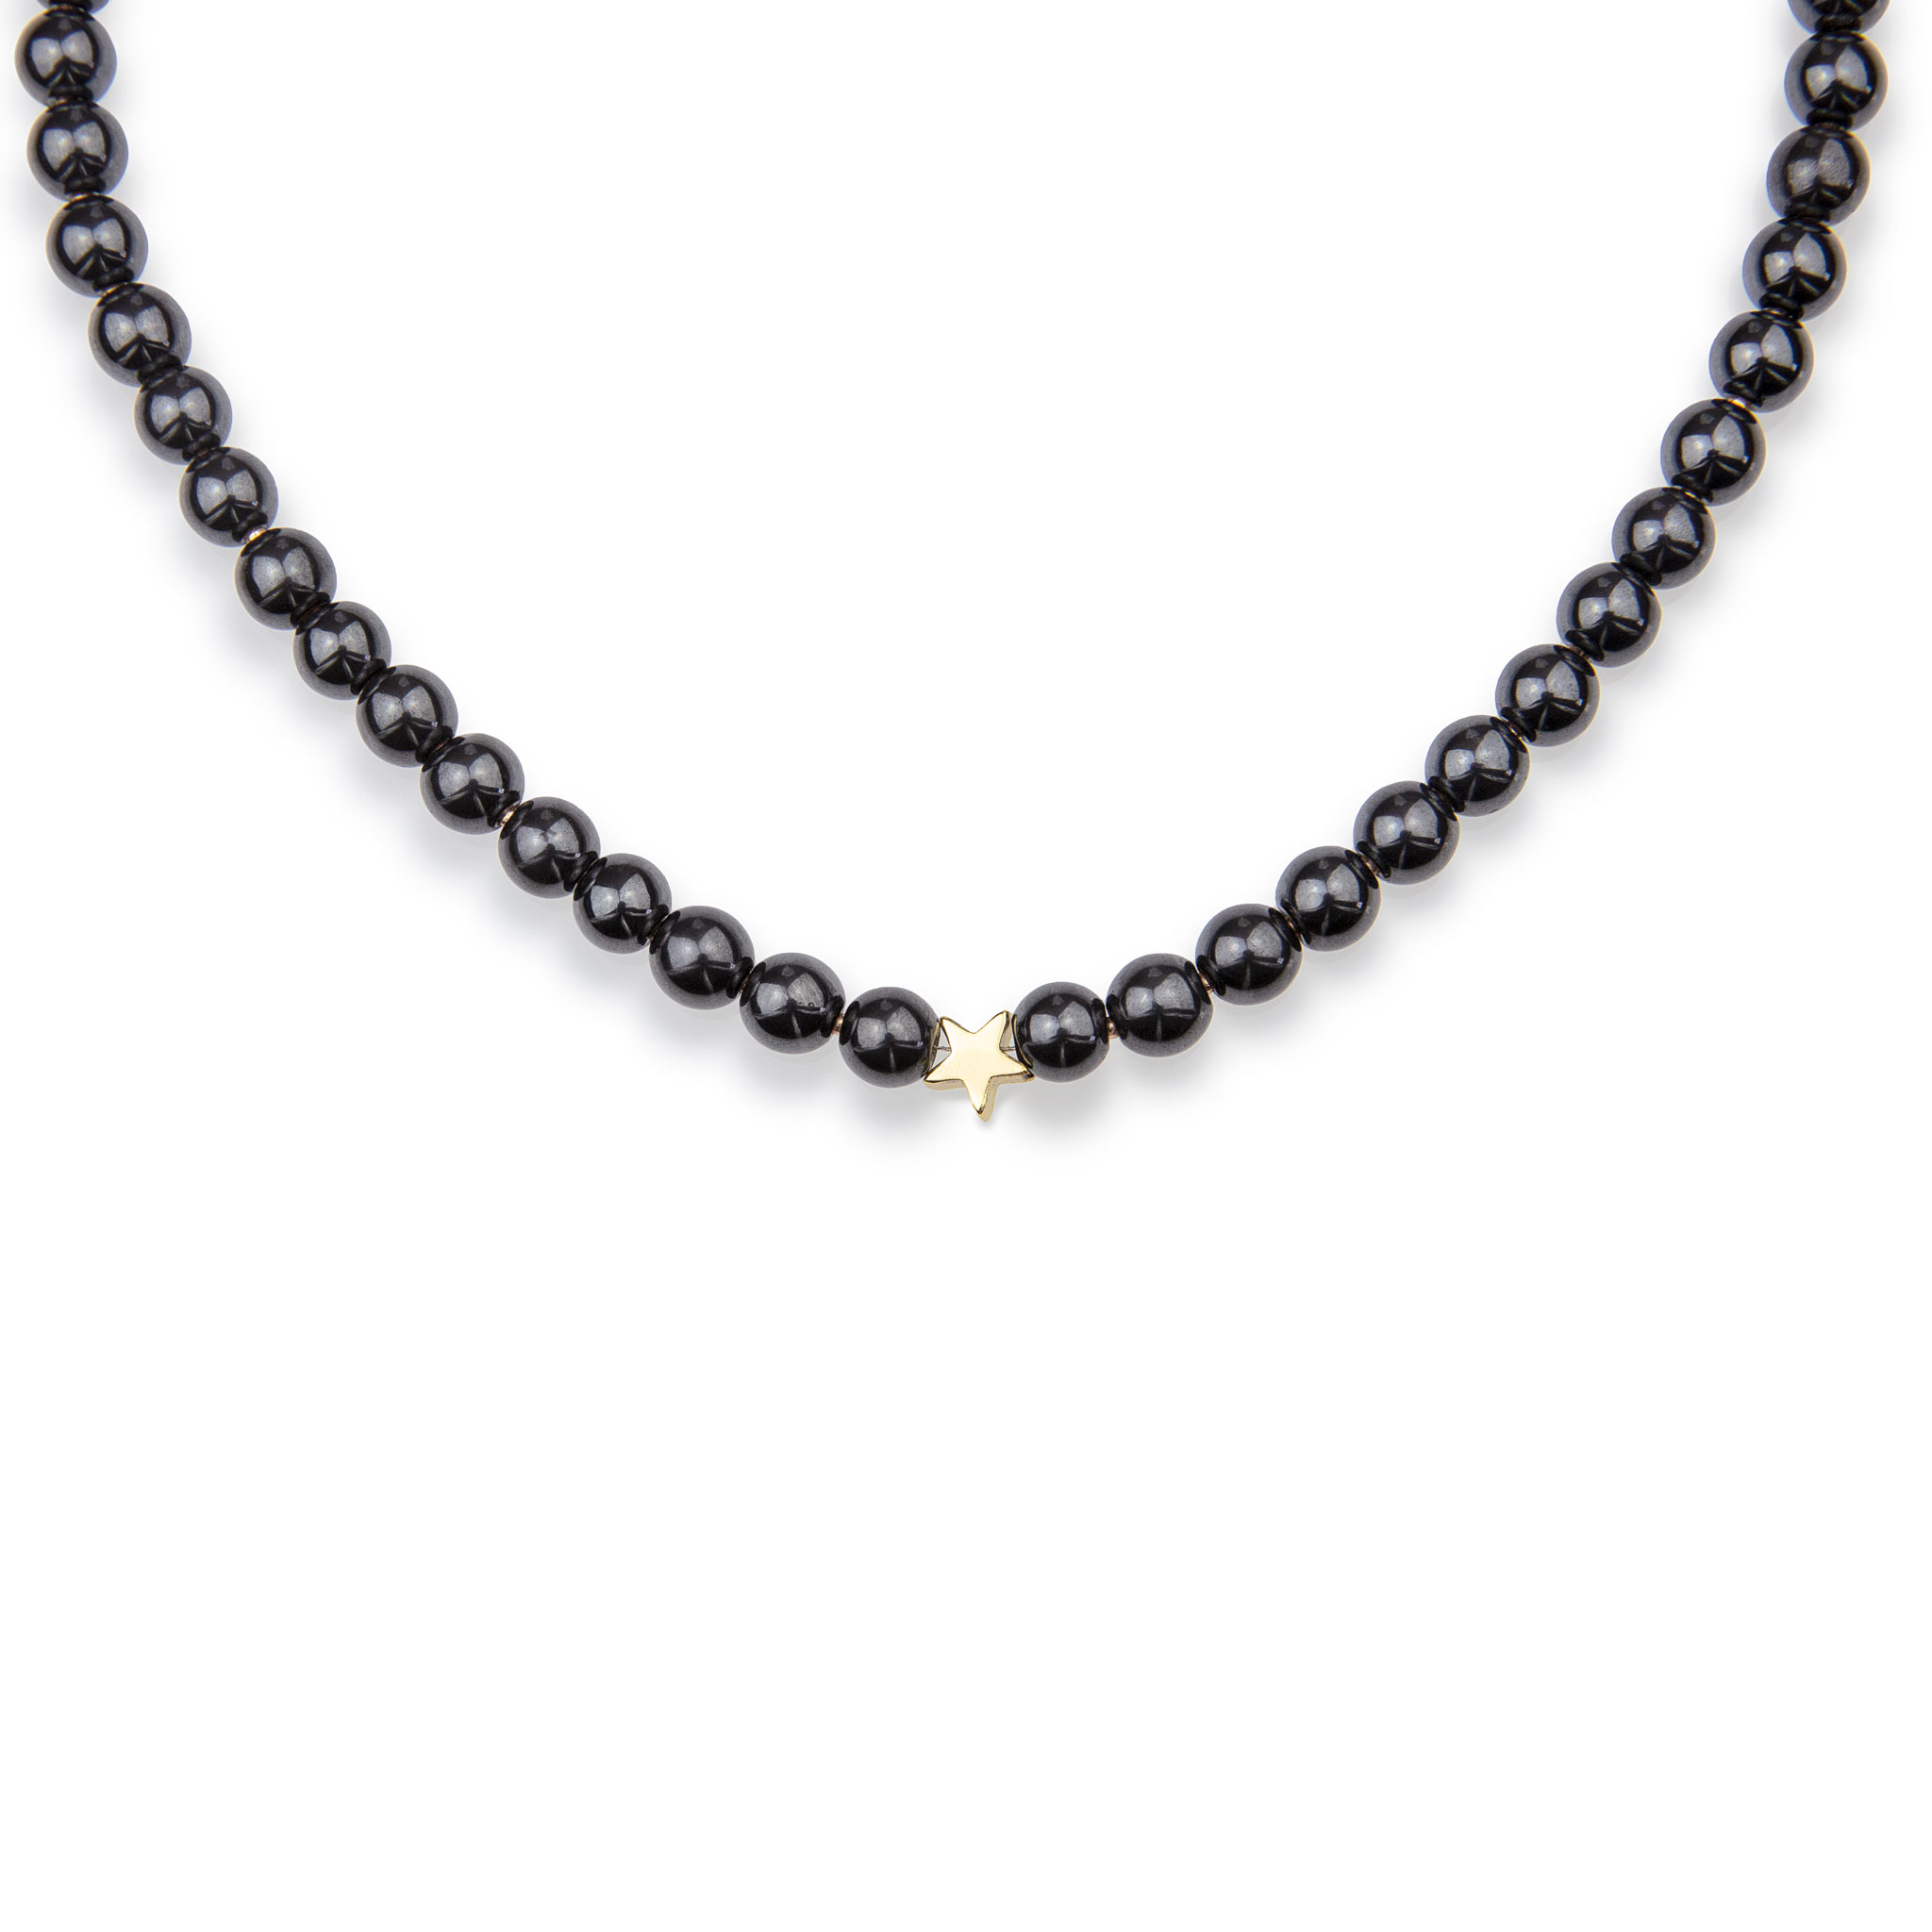 Hematite Stone Necklace Decorated With A Star